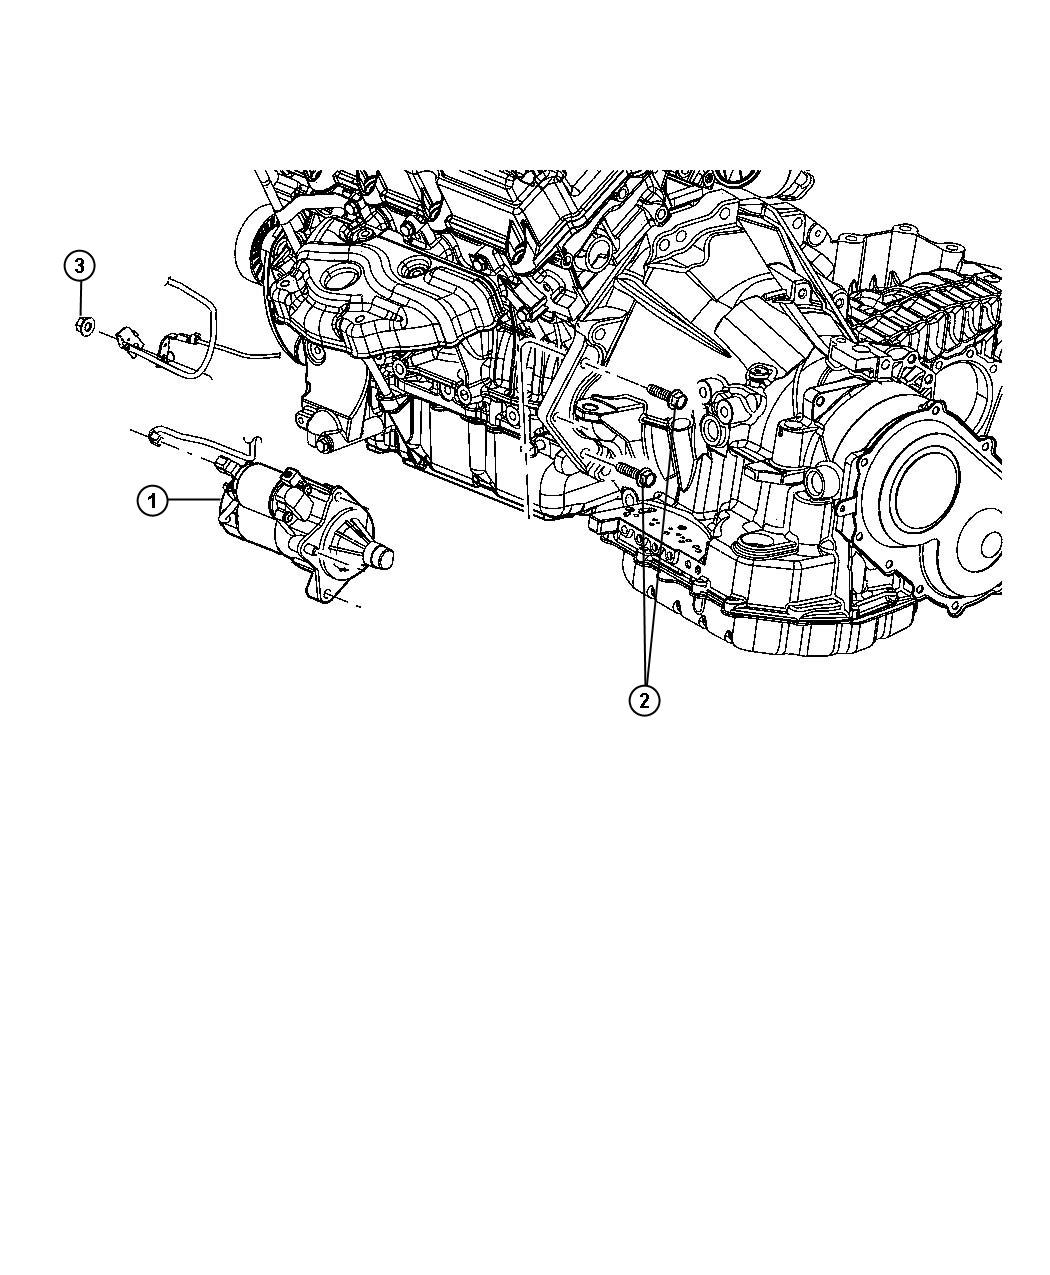 2012 Dodge Avenger Starter and Related Parts